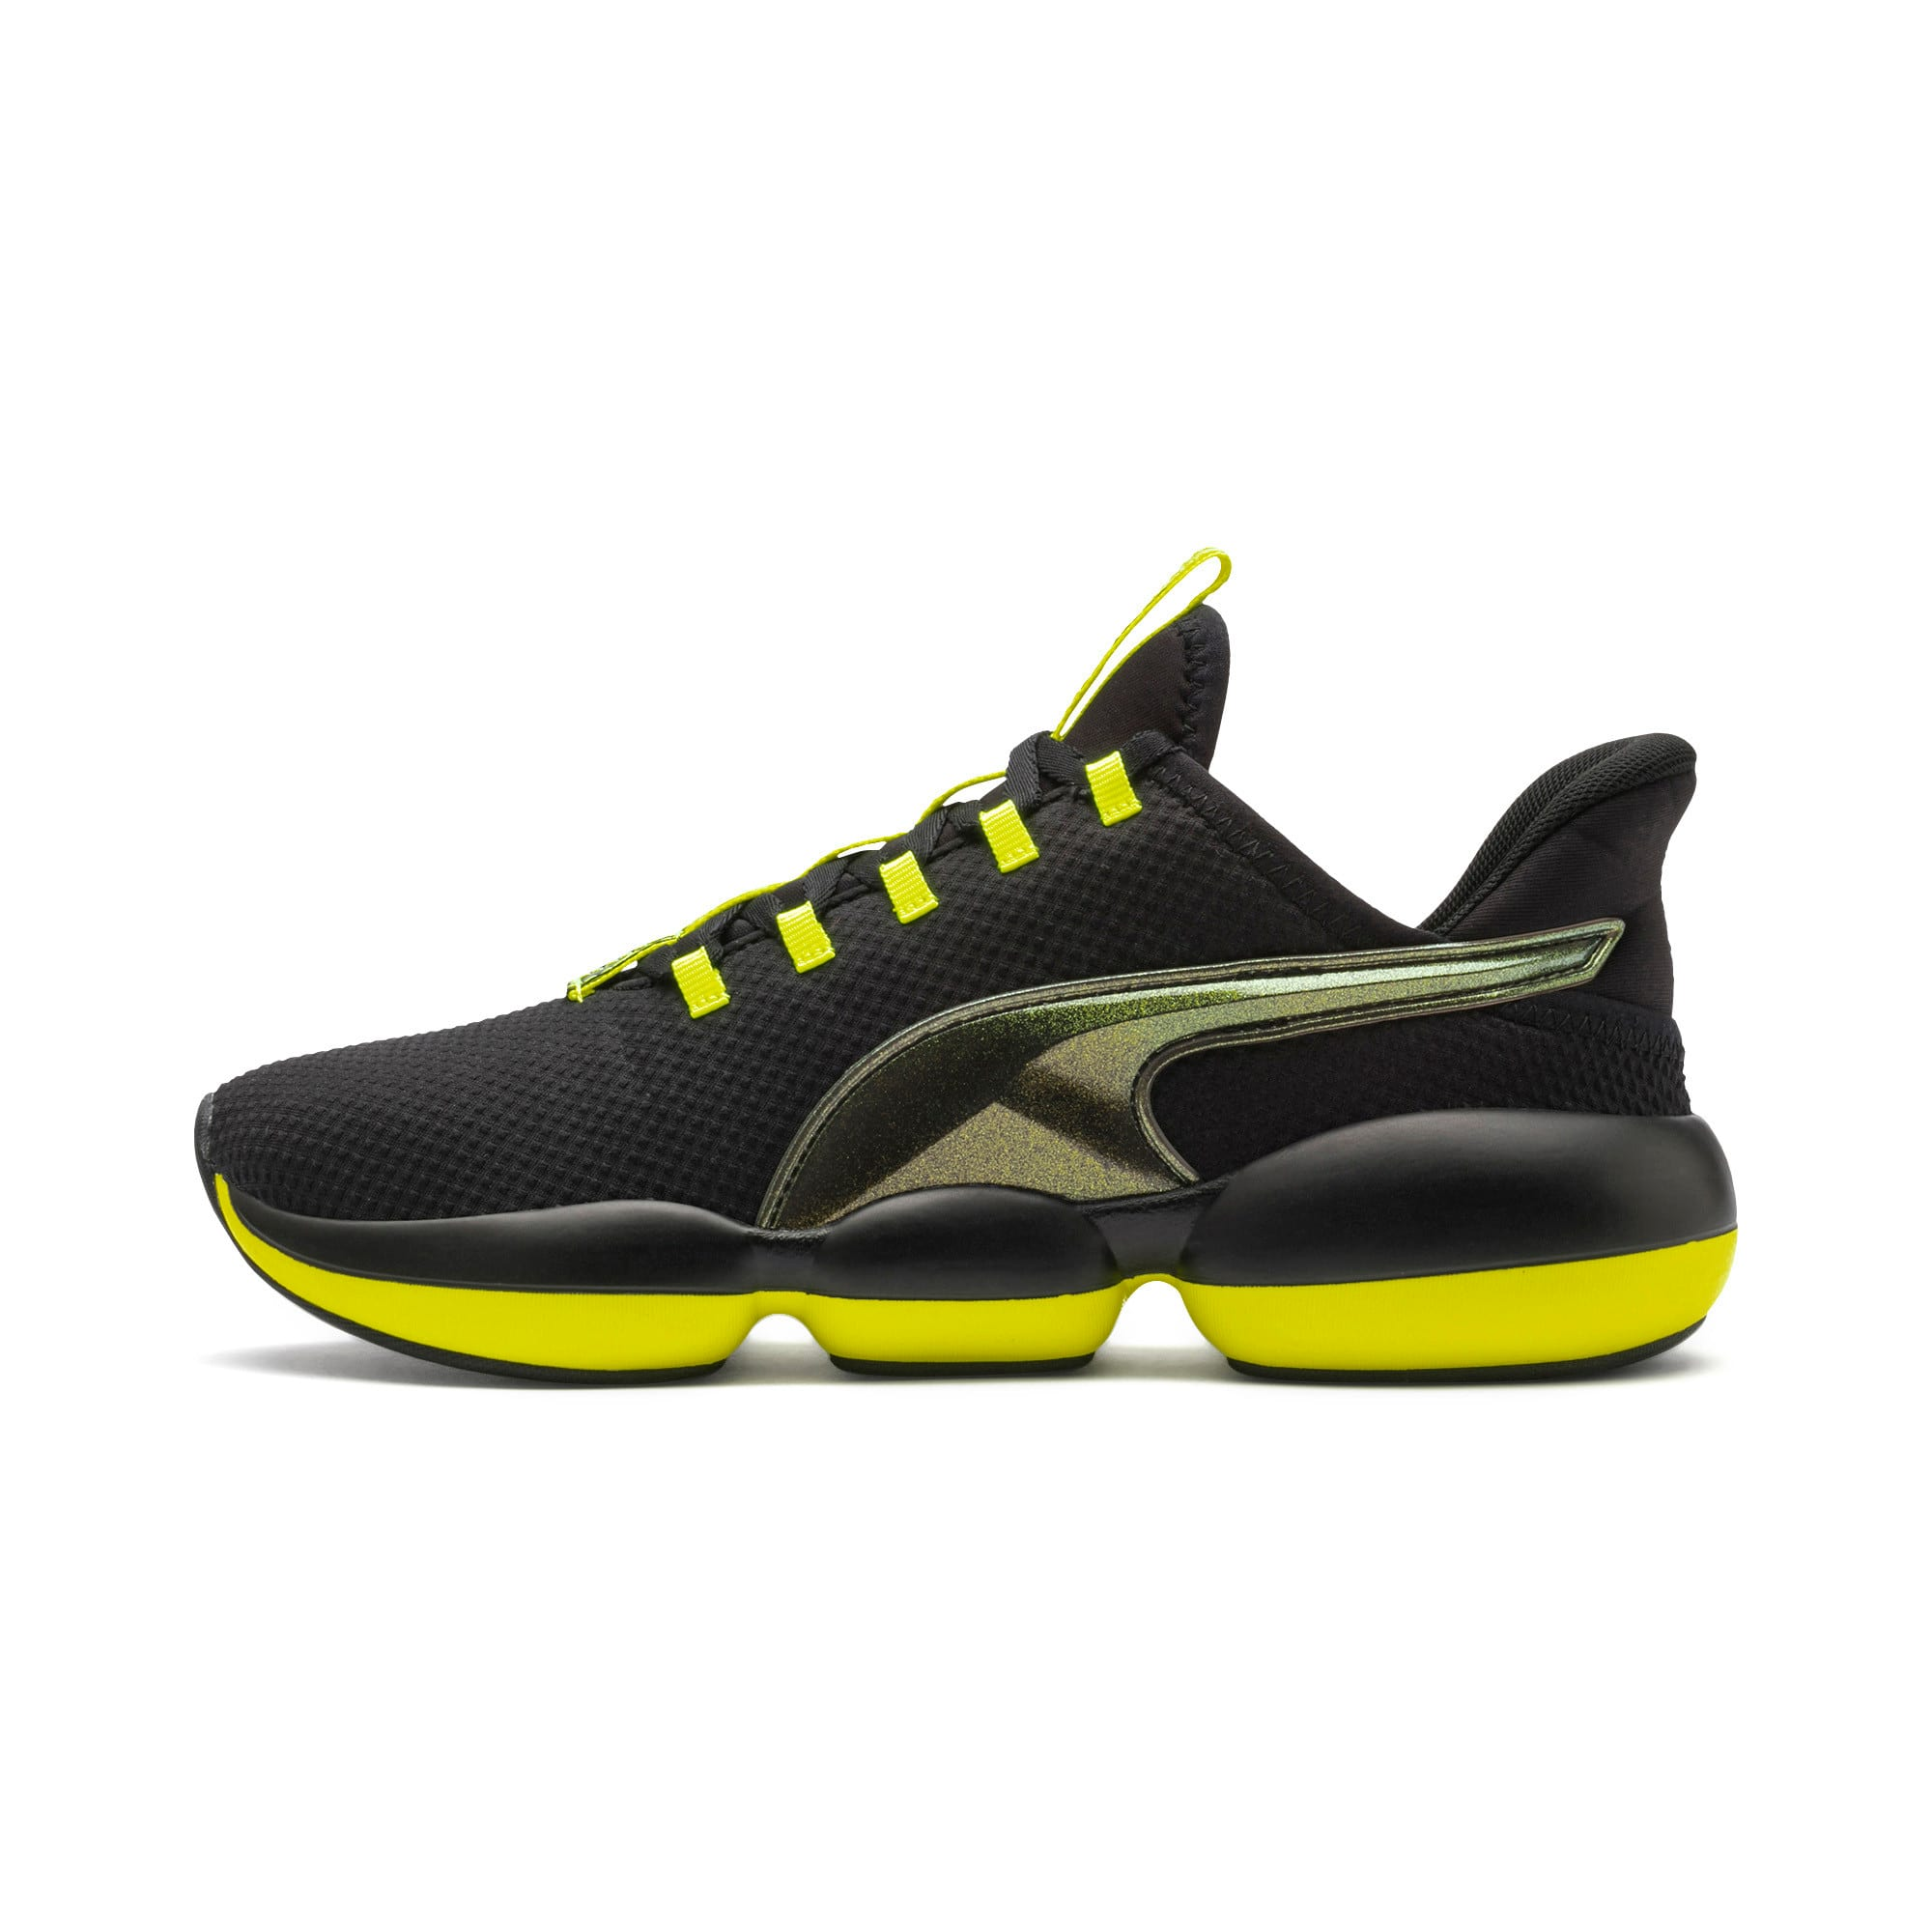 Thumbnail 1 of Mode XT Shift Women's Training Shoes, Puma Black-Yellow Alert, medium